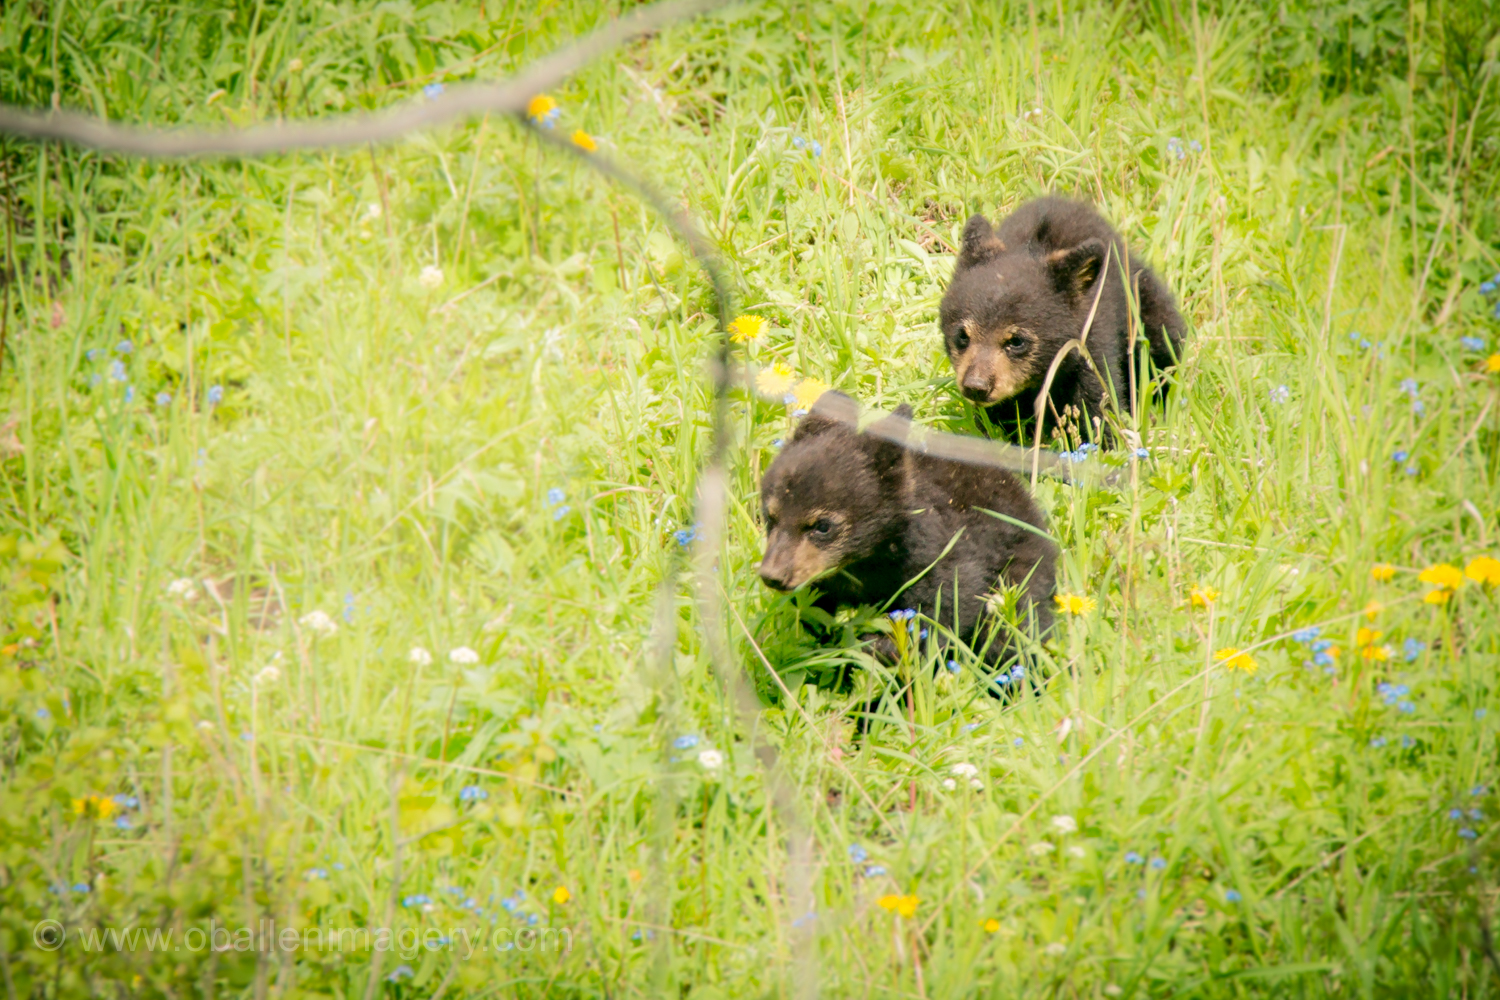 These cubs entertained many people for quite a while on this beautiful day.